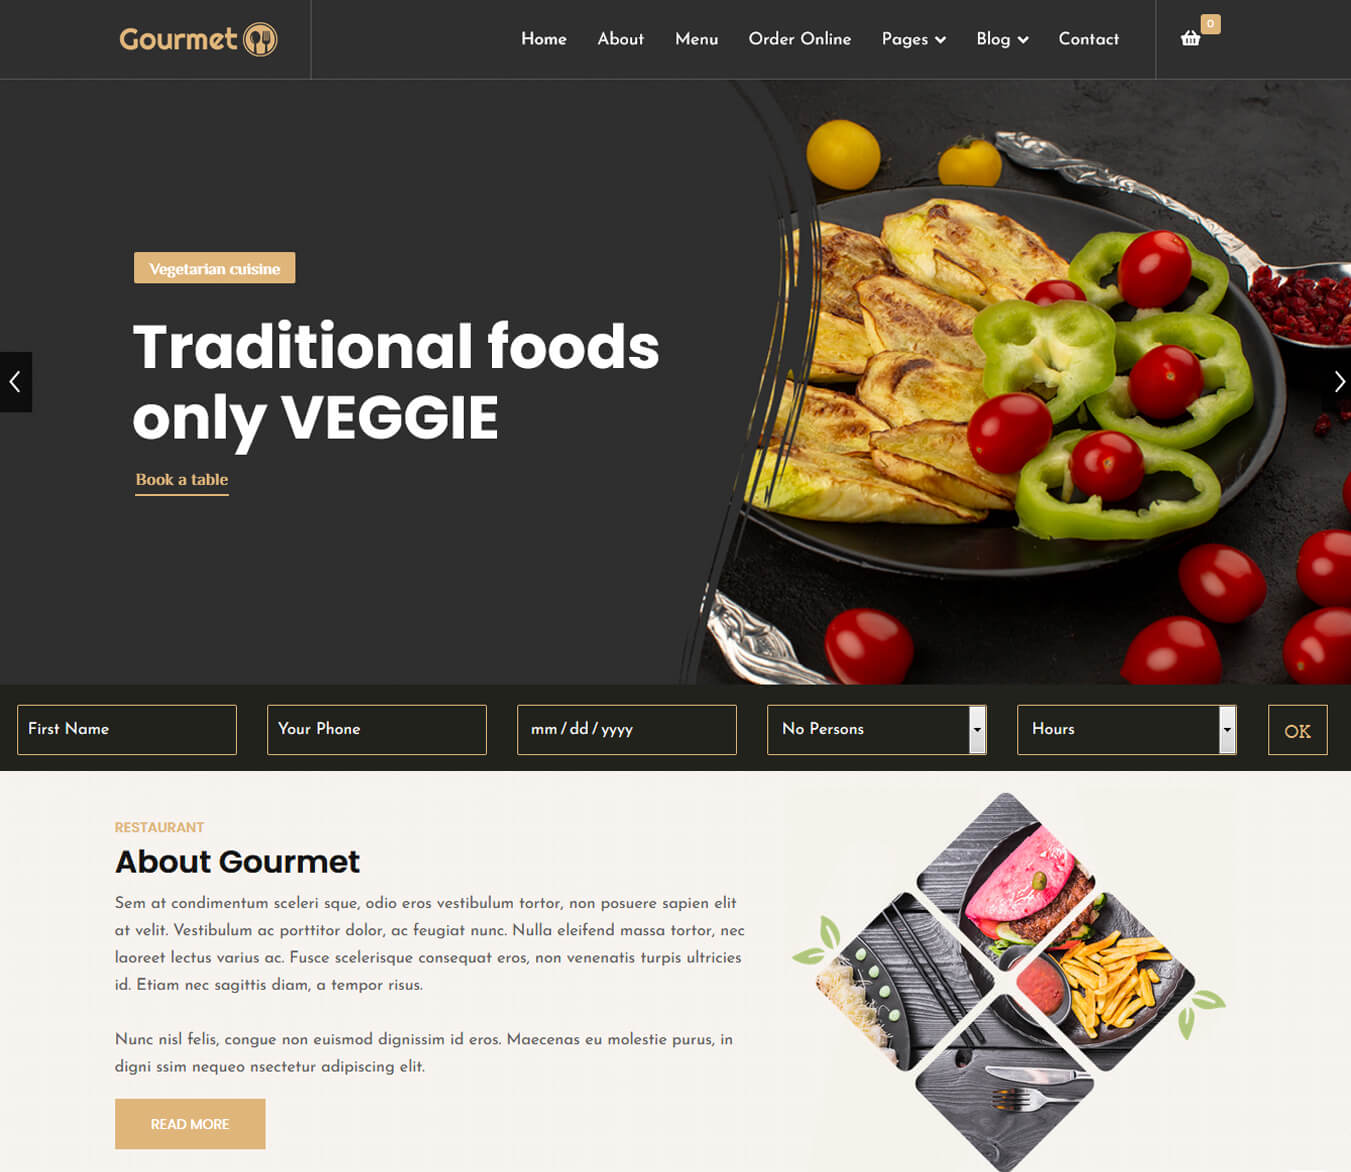 Gourmet - Restaurat Booking Reservation Joomla